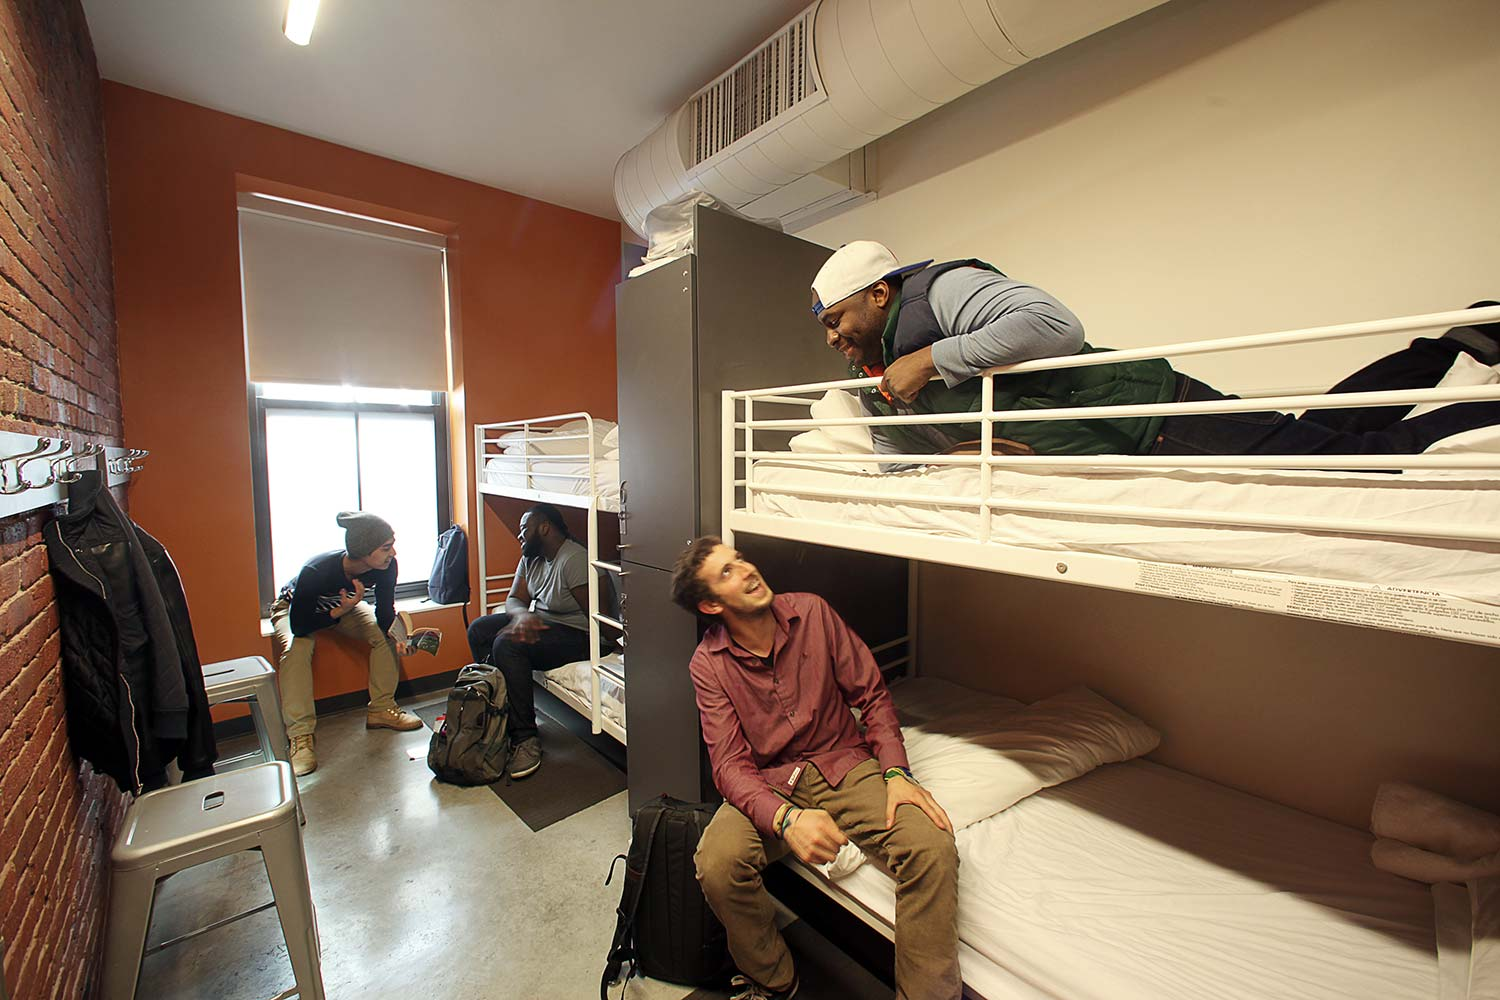 People sitting and talking in dorm room with 4 beds.